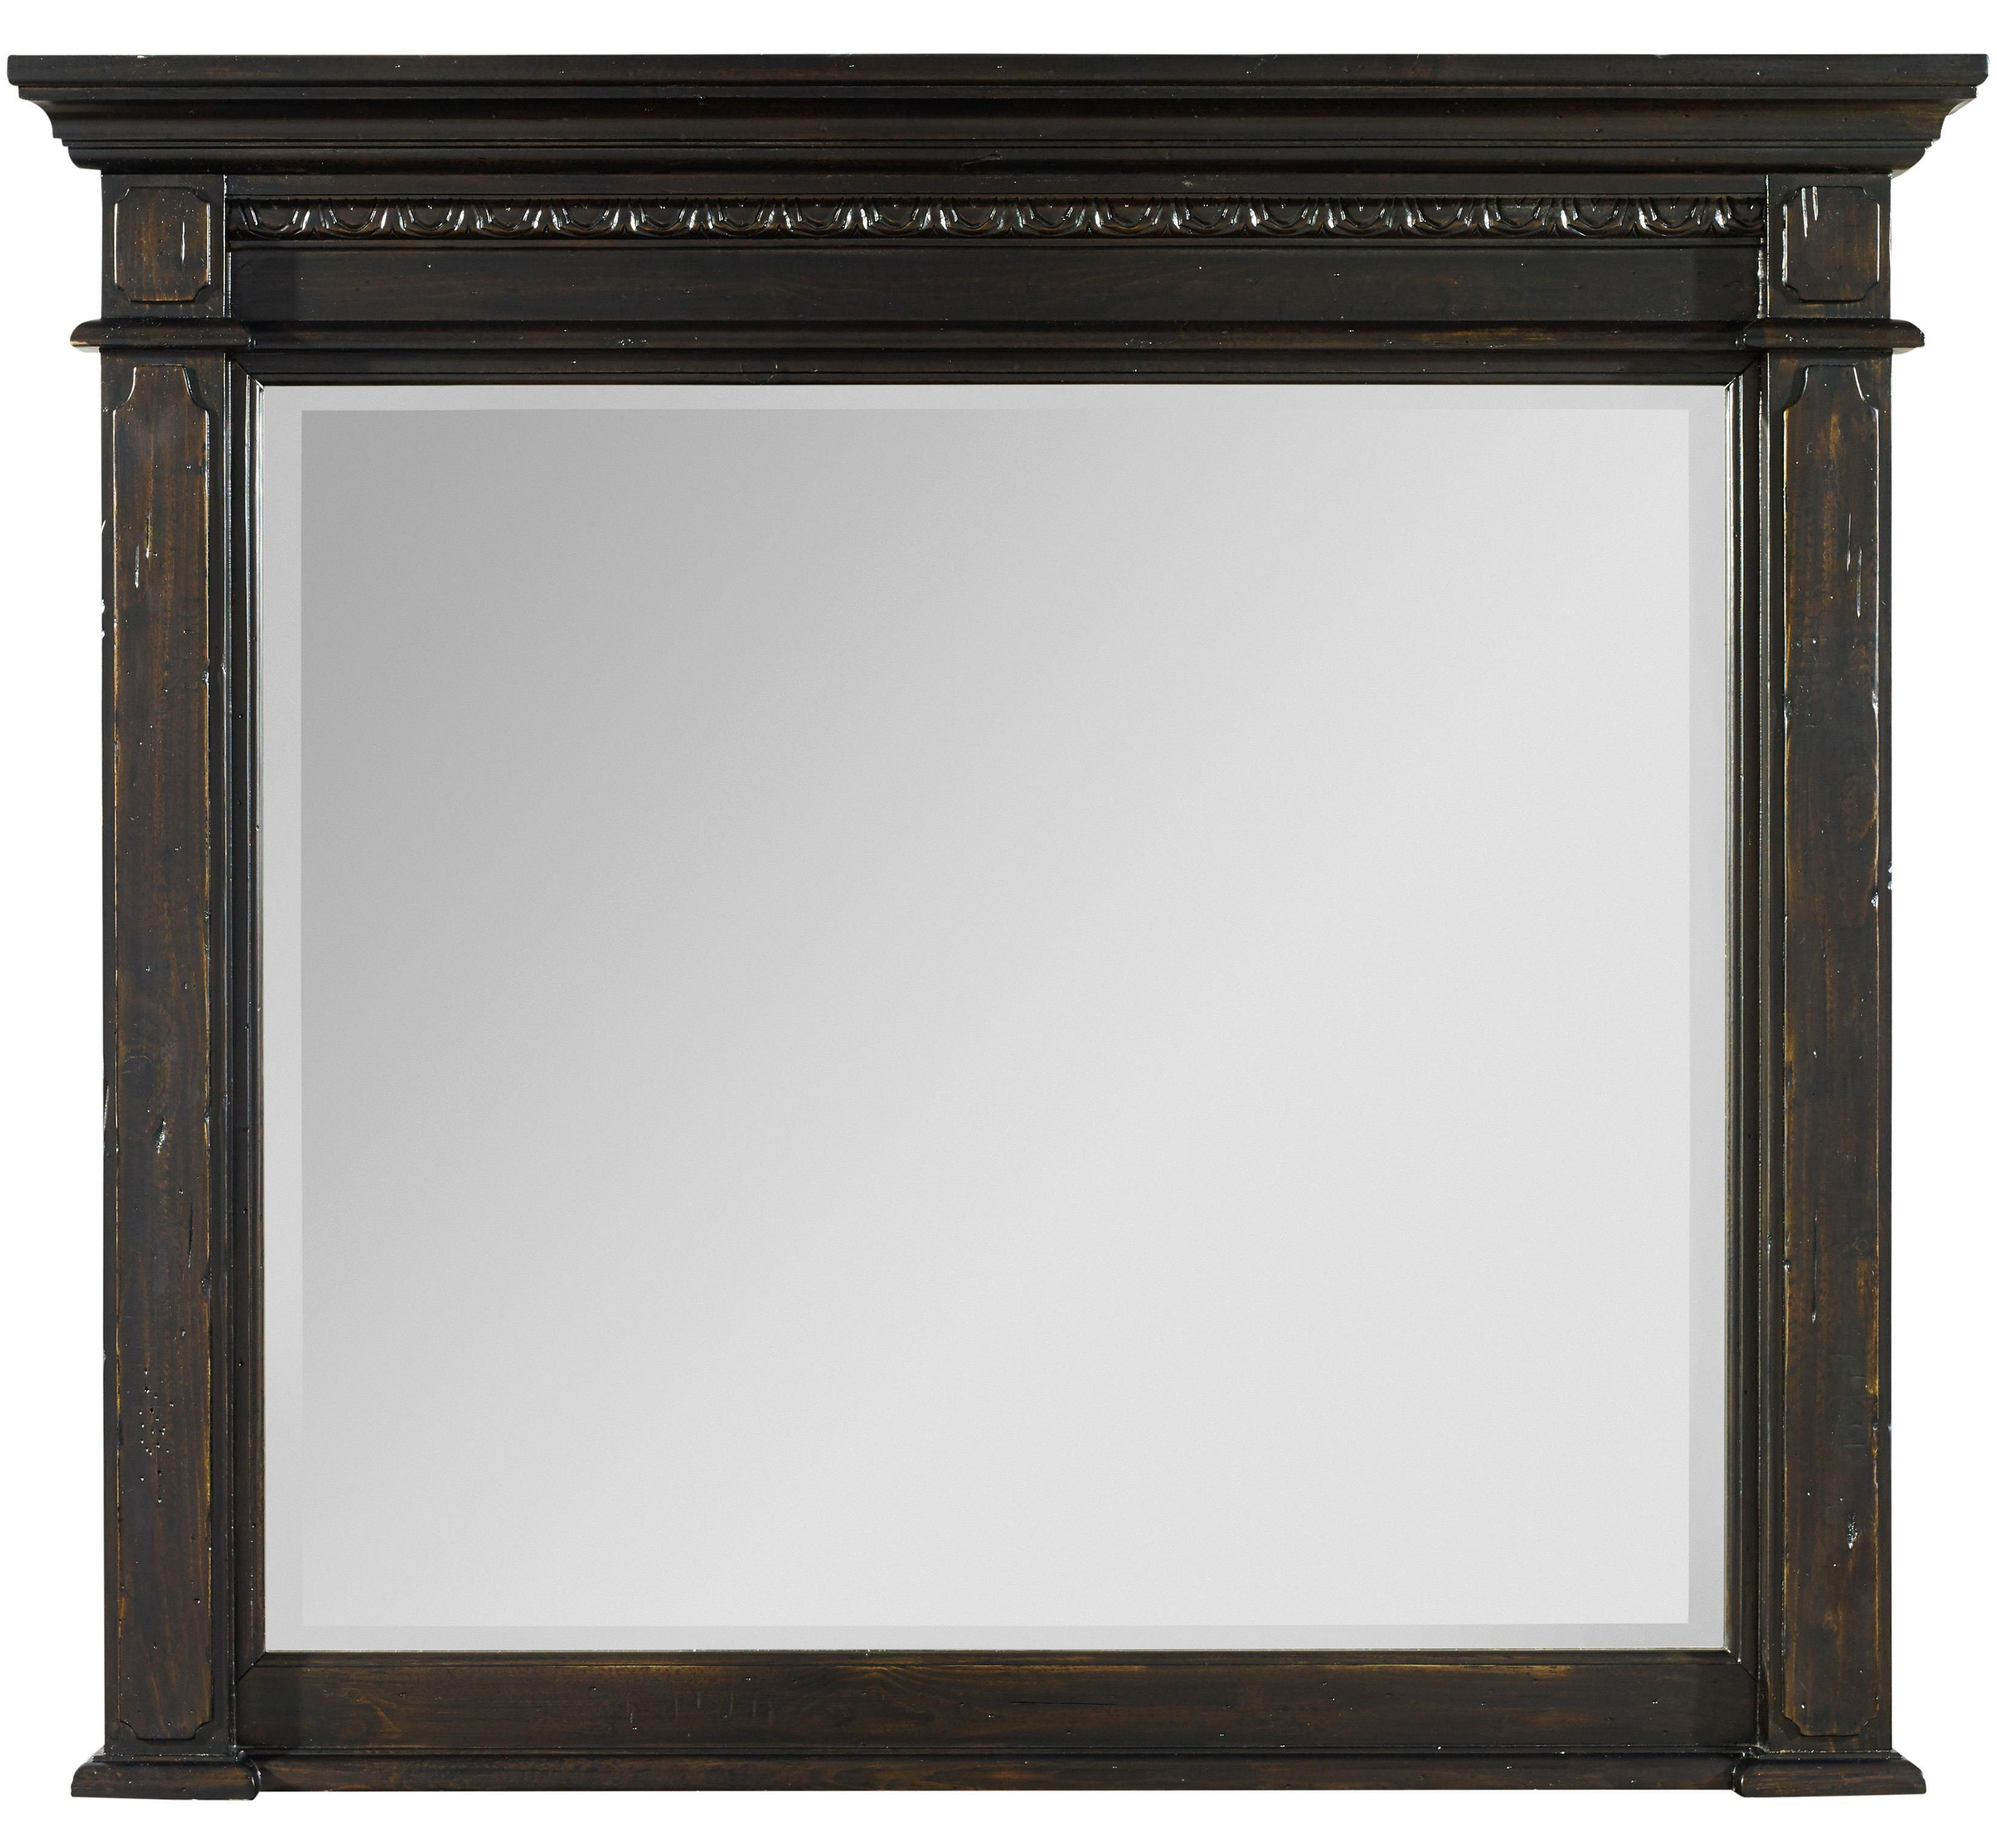 Hooker Furniture Treviso Mantle Landscape Mirror - Item Number: 5374-90006